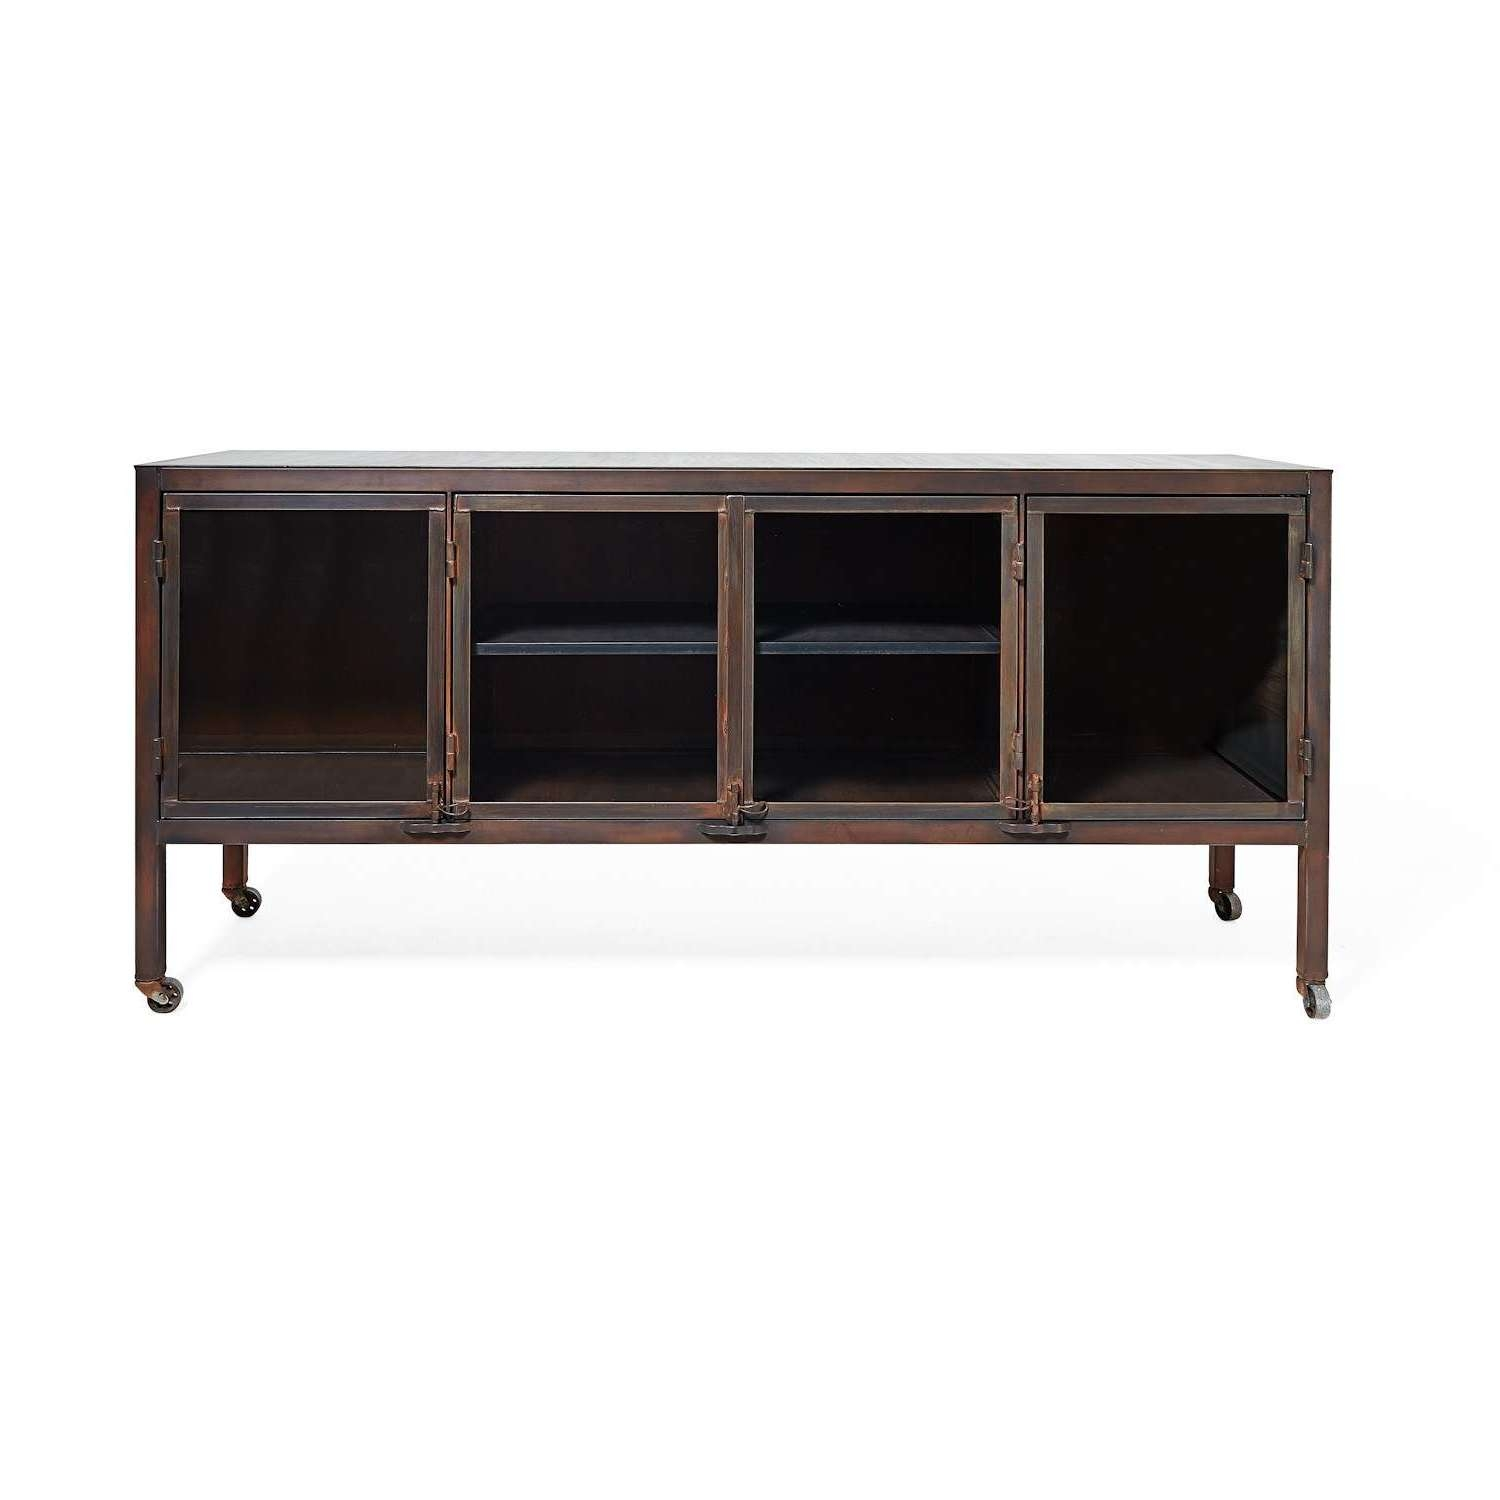 Wooden Cabinets For Your Nyc Home Or Apartment At Abc Home Pertaining To Green Sideboards (View 10 of 20)